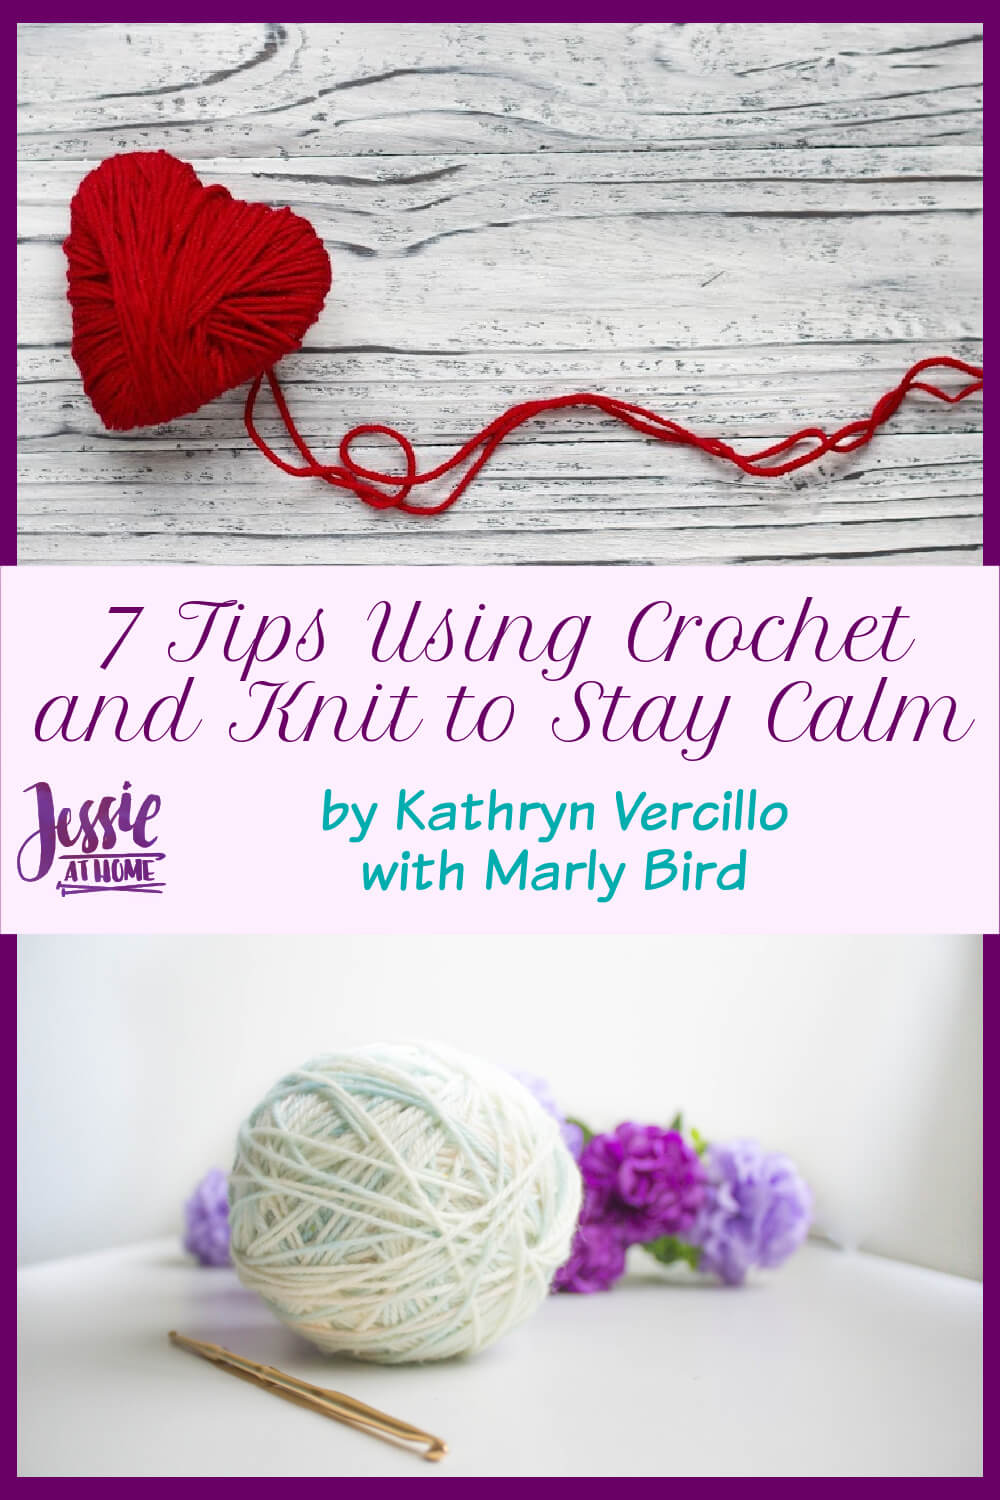 7 Tips for Using Crochet and Knitting to Stay Calm and Centered This Holiday Season